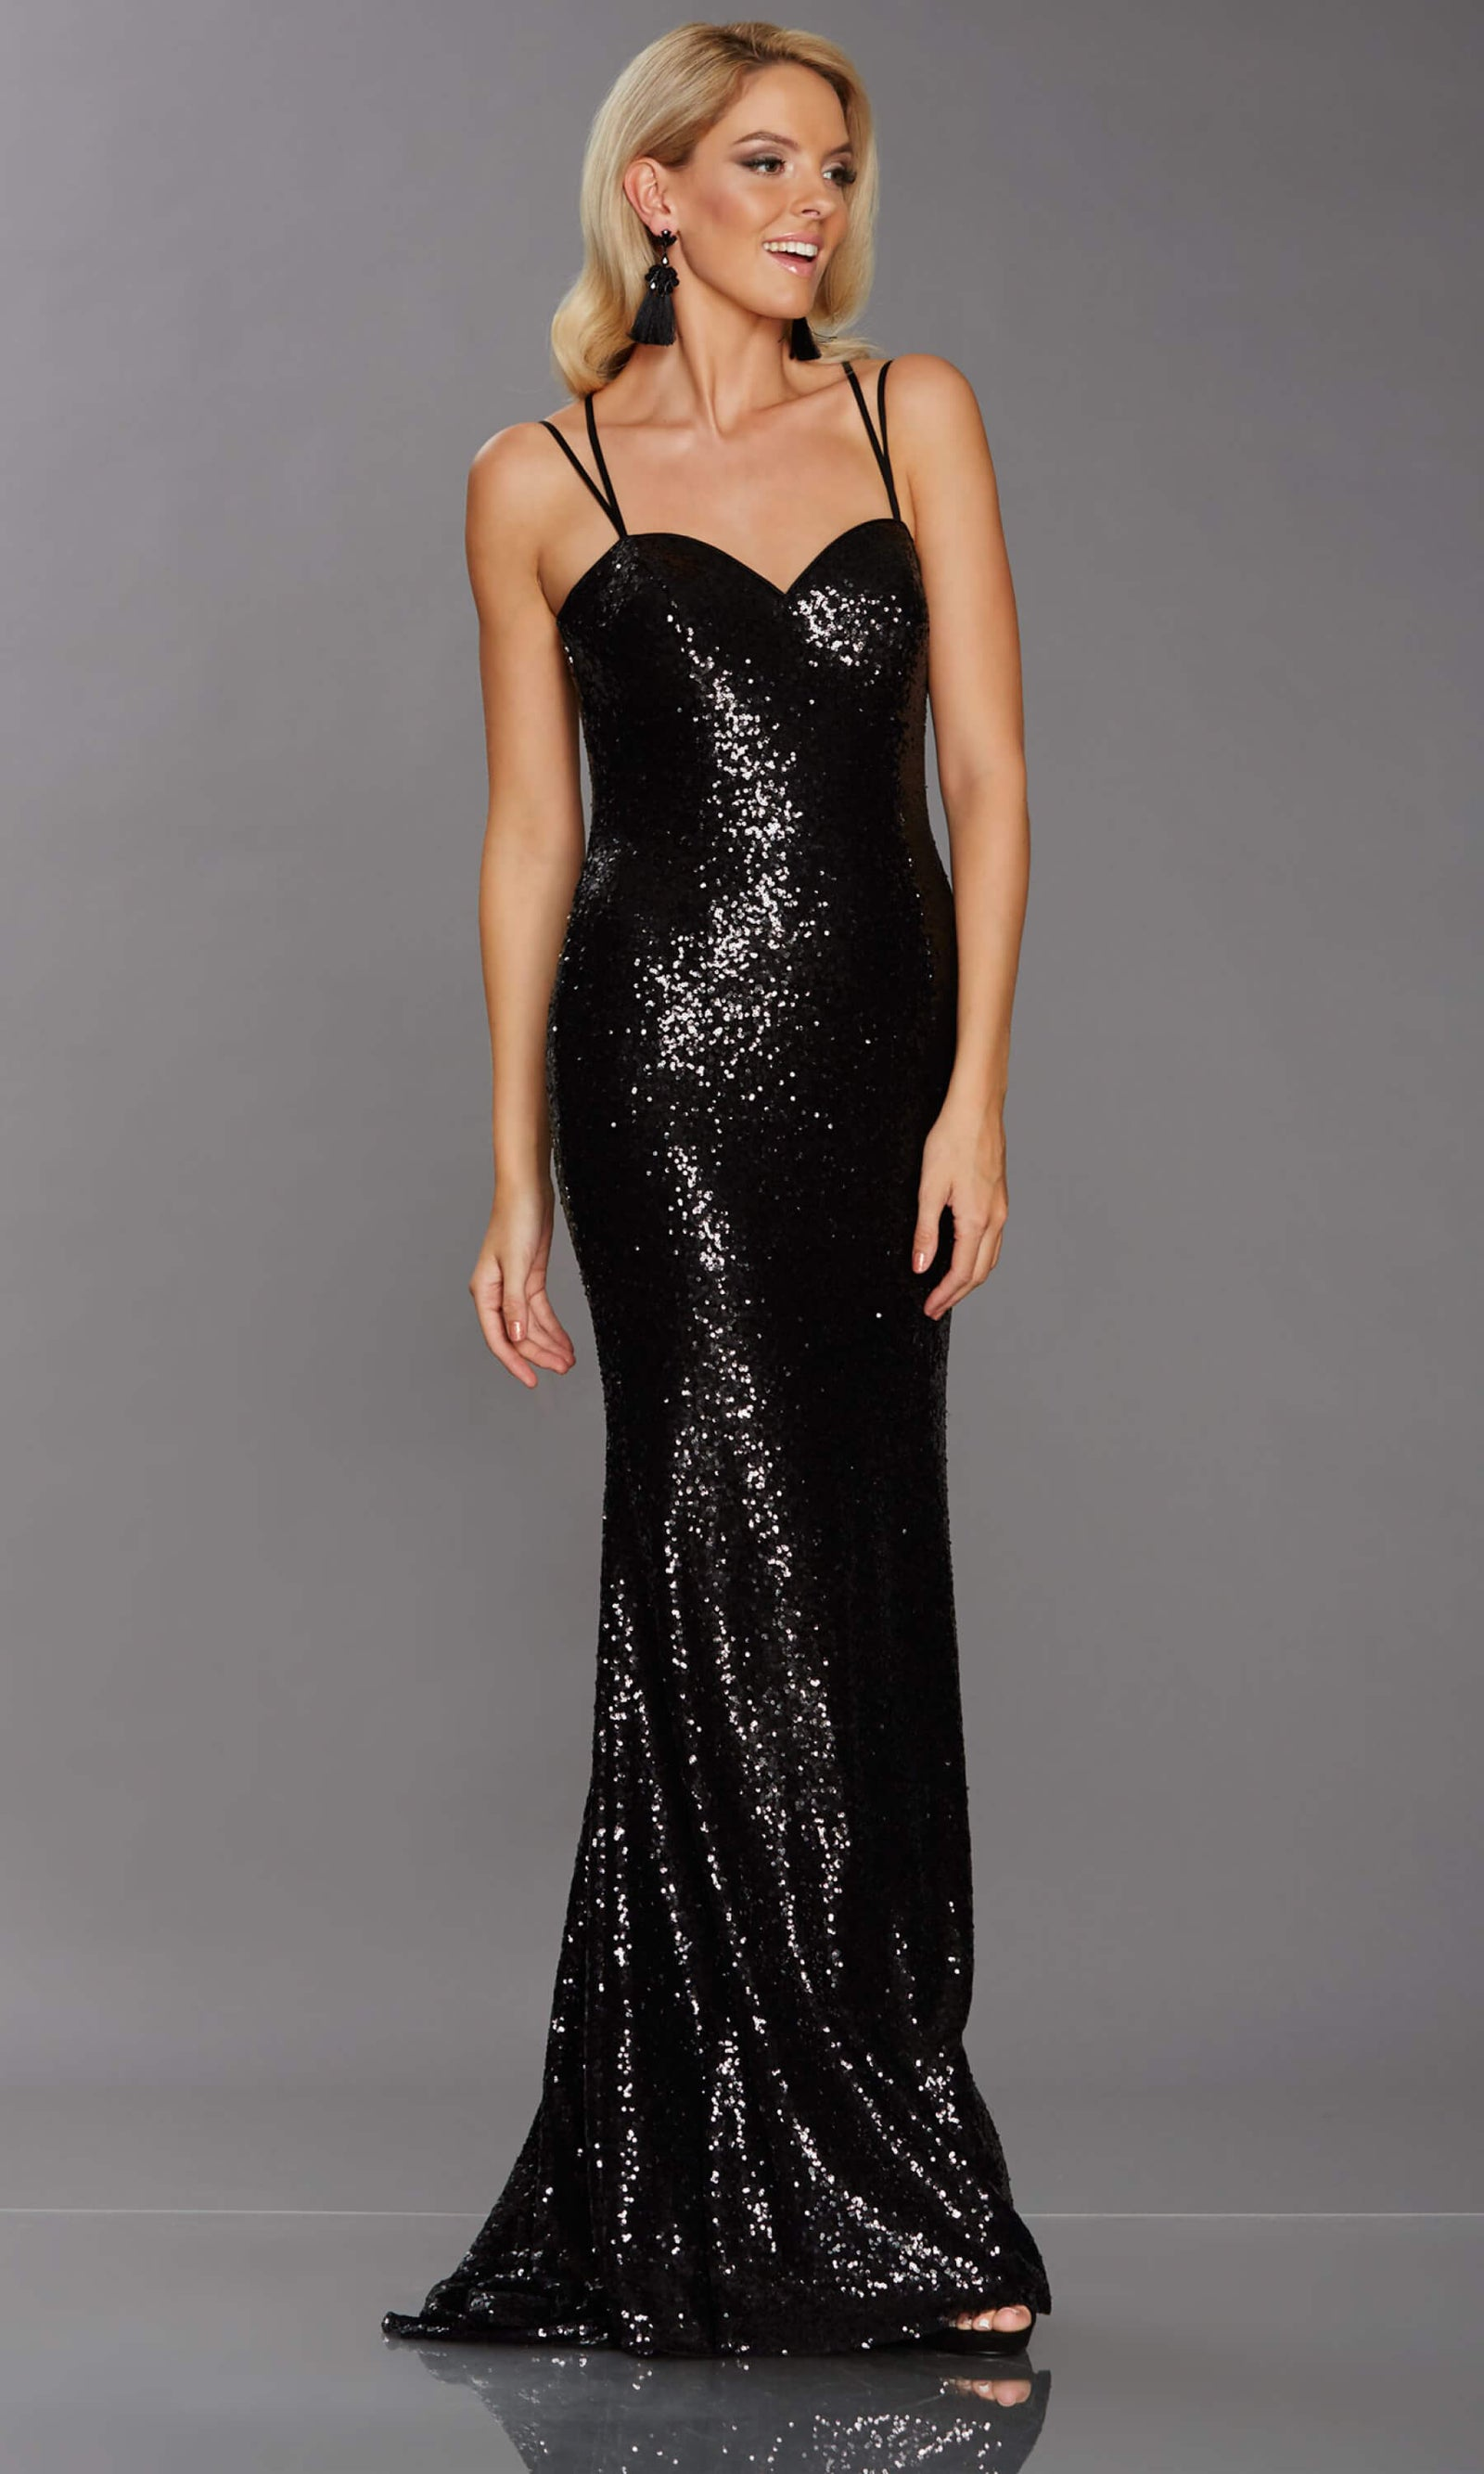 Cali Black Tiffanys Sequin Spaghetti Strap Dress - Fab Frocks